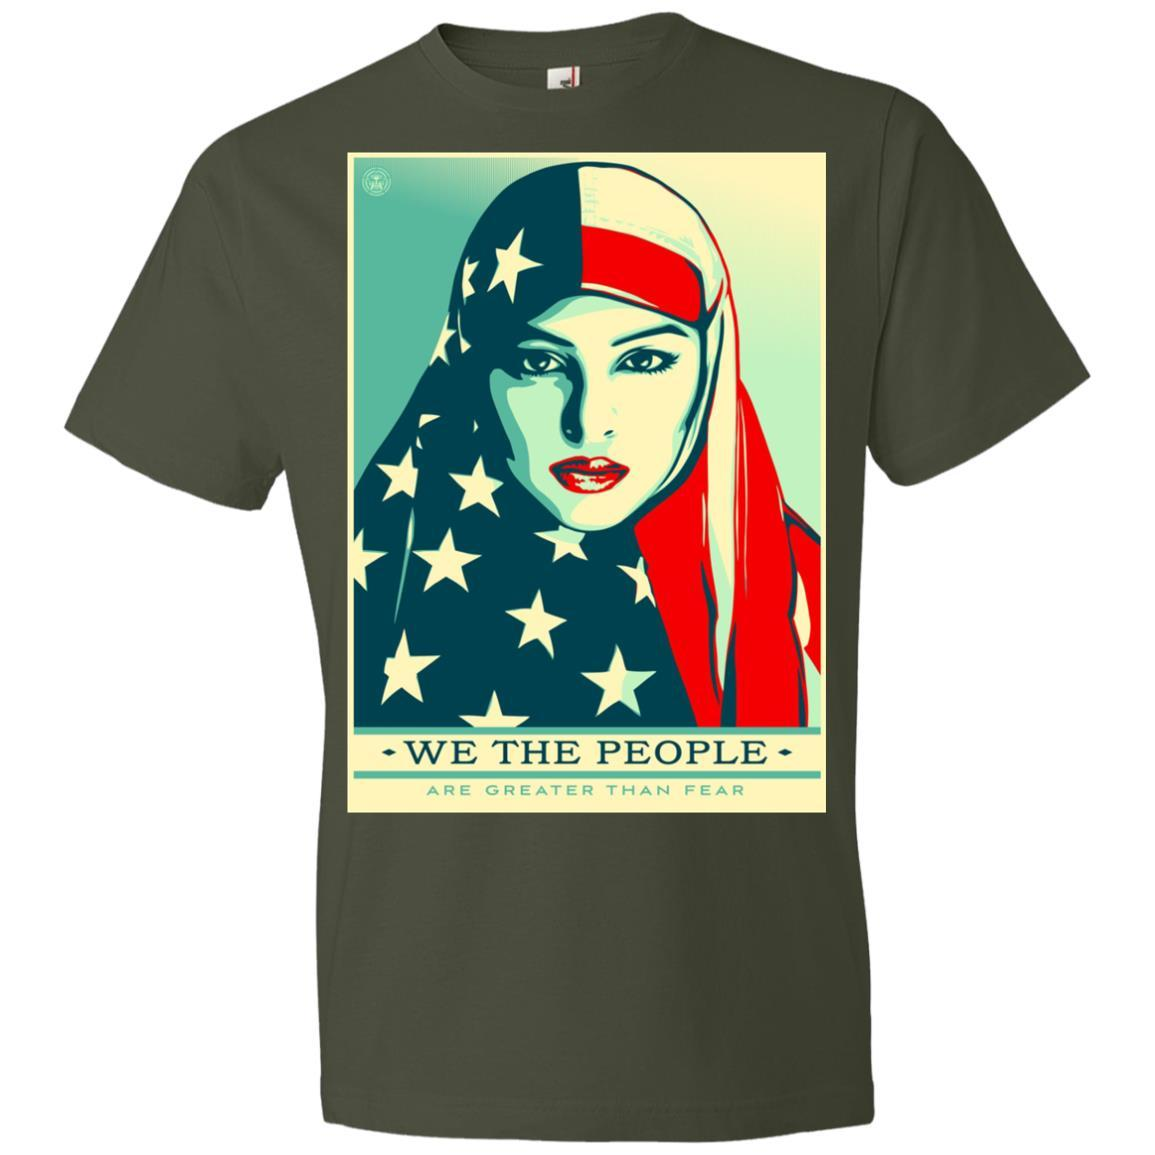 we the people are greater than fear - Anvil Lightweight T-Shirt Style / Color / Size